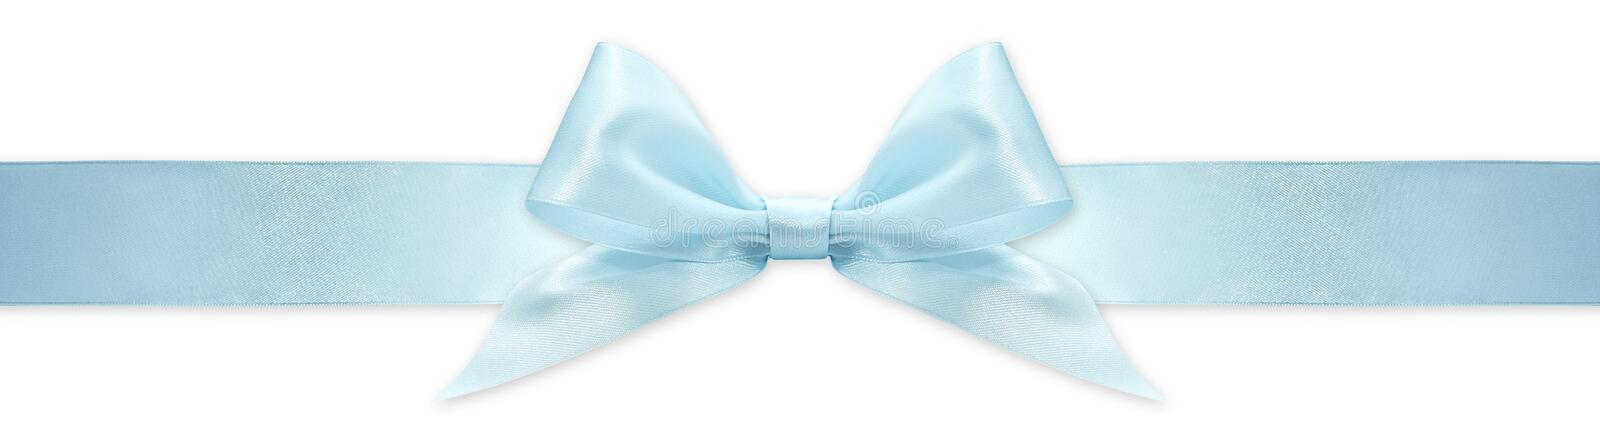 Blue  ribbon bow isolated on white background, for event or gift package royalty free stock photo